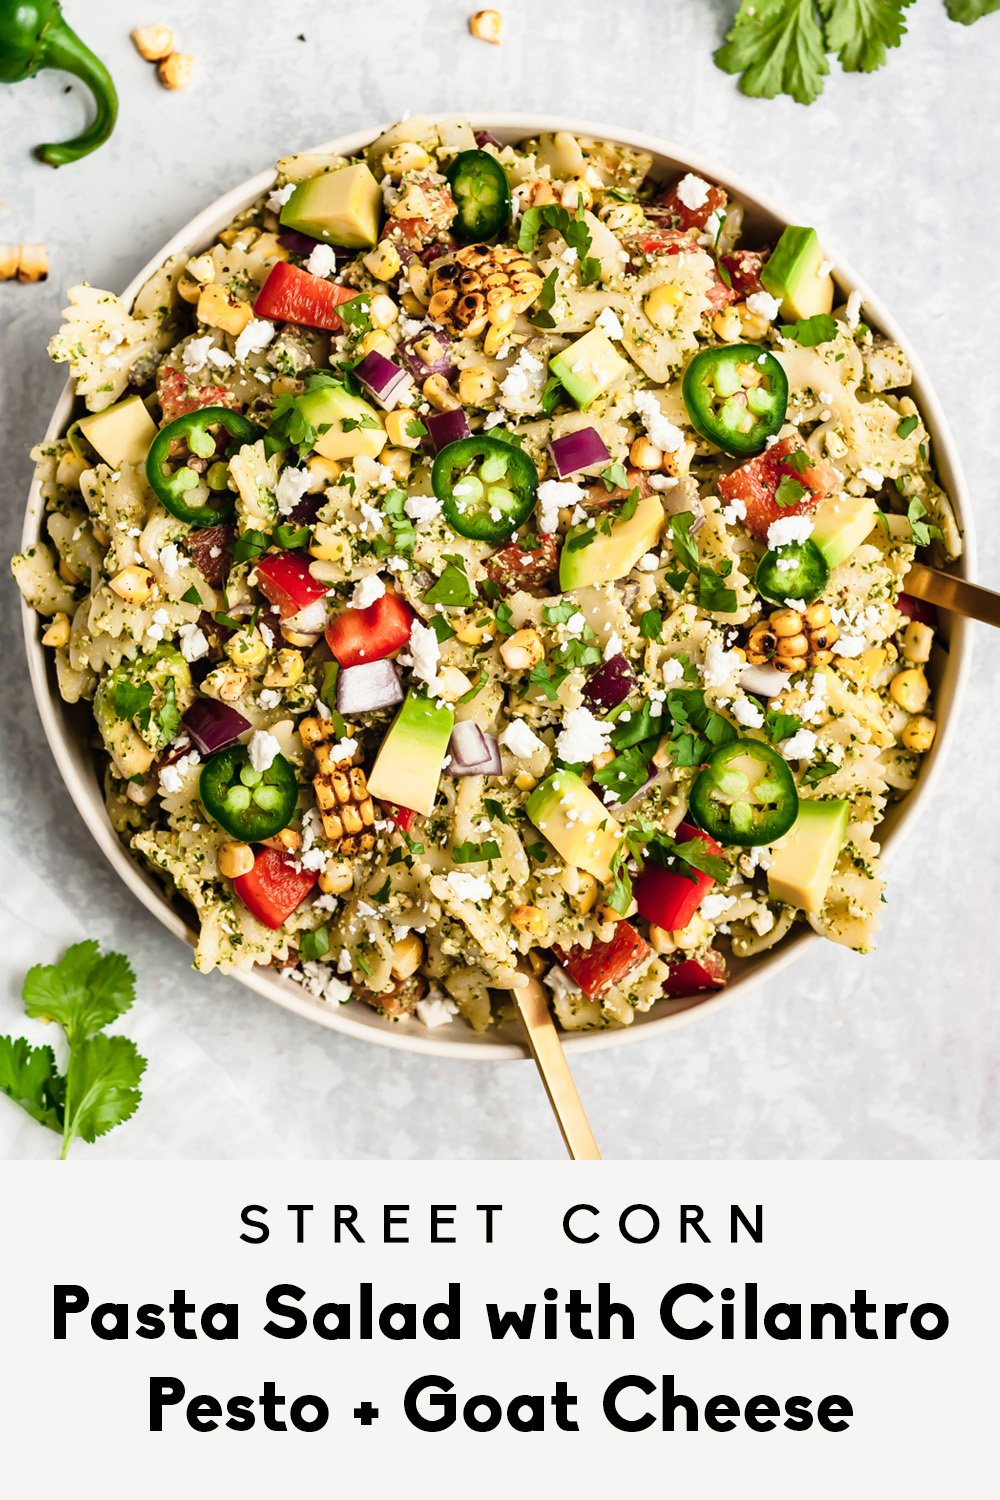 street corn pasta salad in a bowl with text overlay